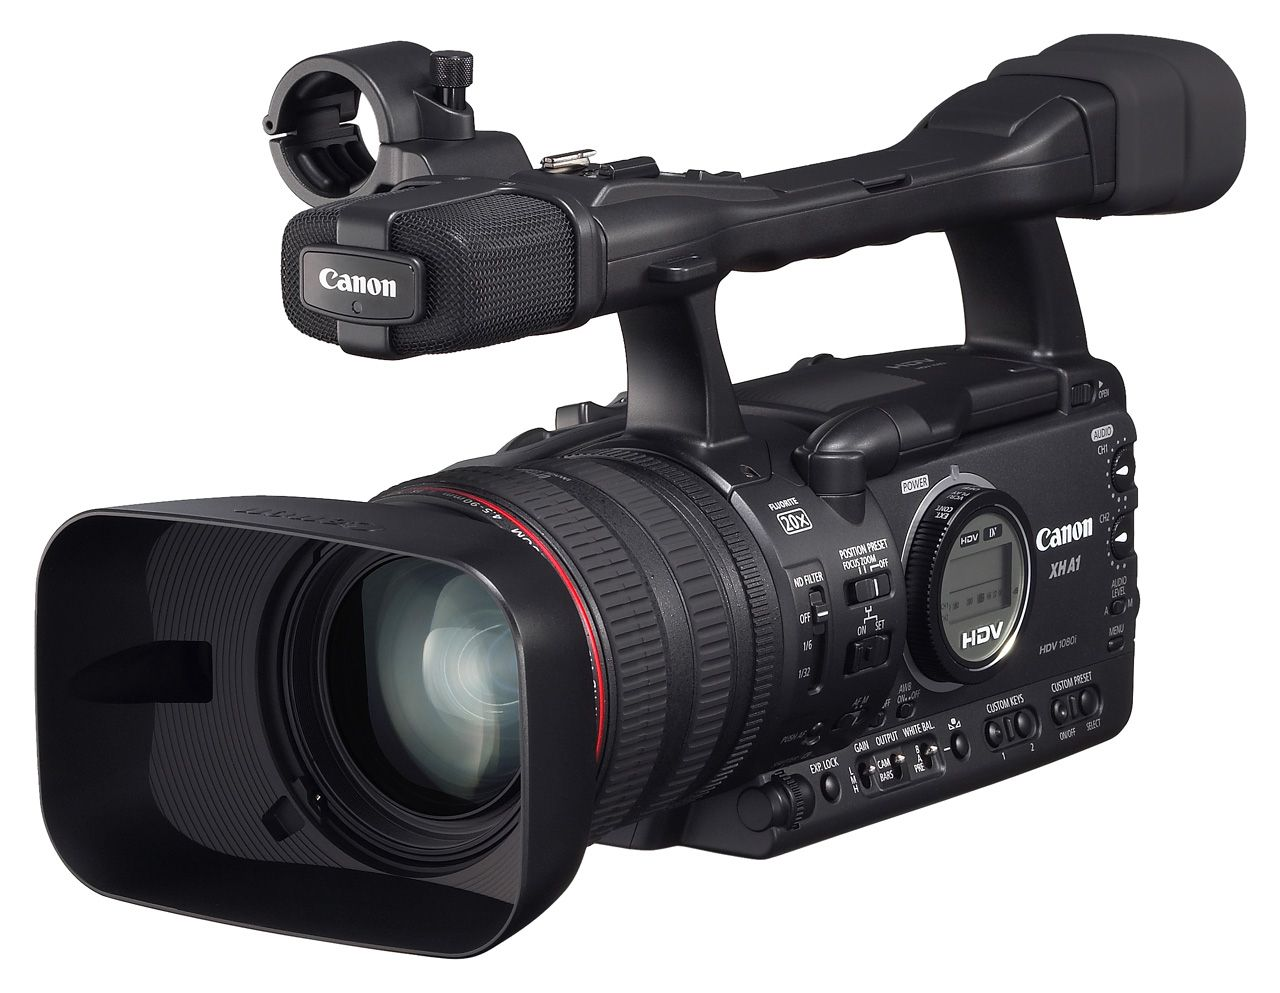 Find the best video cameras on the internet at Bestestores.net ...